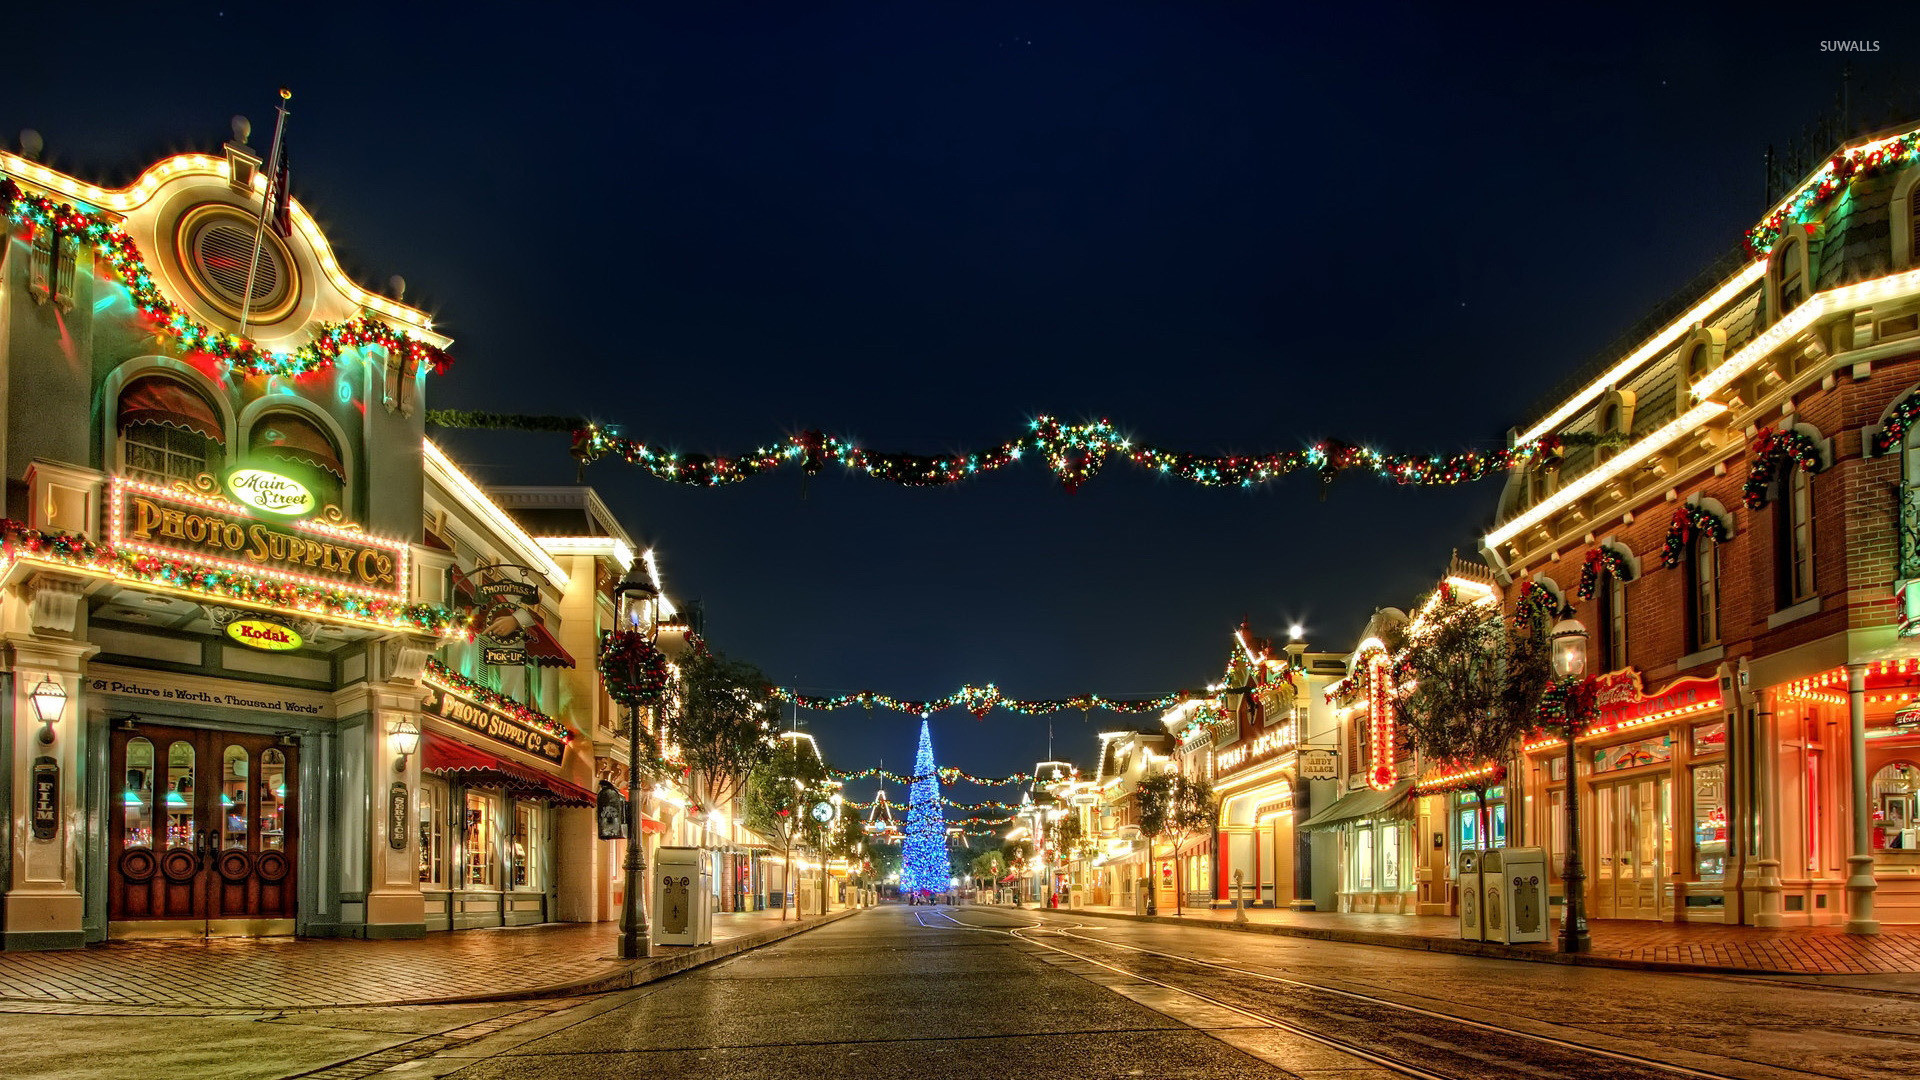 Res: 1920x1080, Christmas decorations in the city wallpaper  jpg